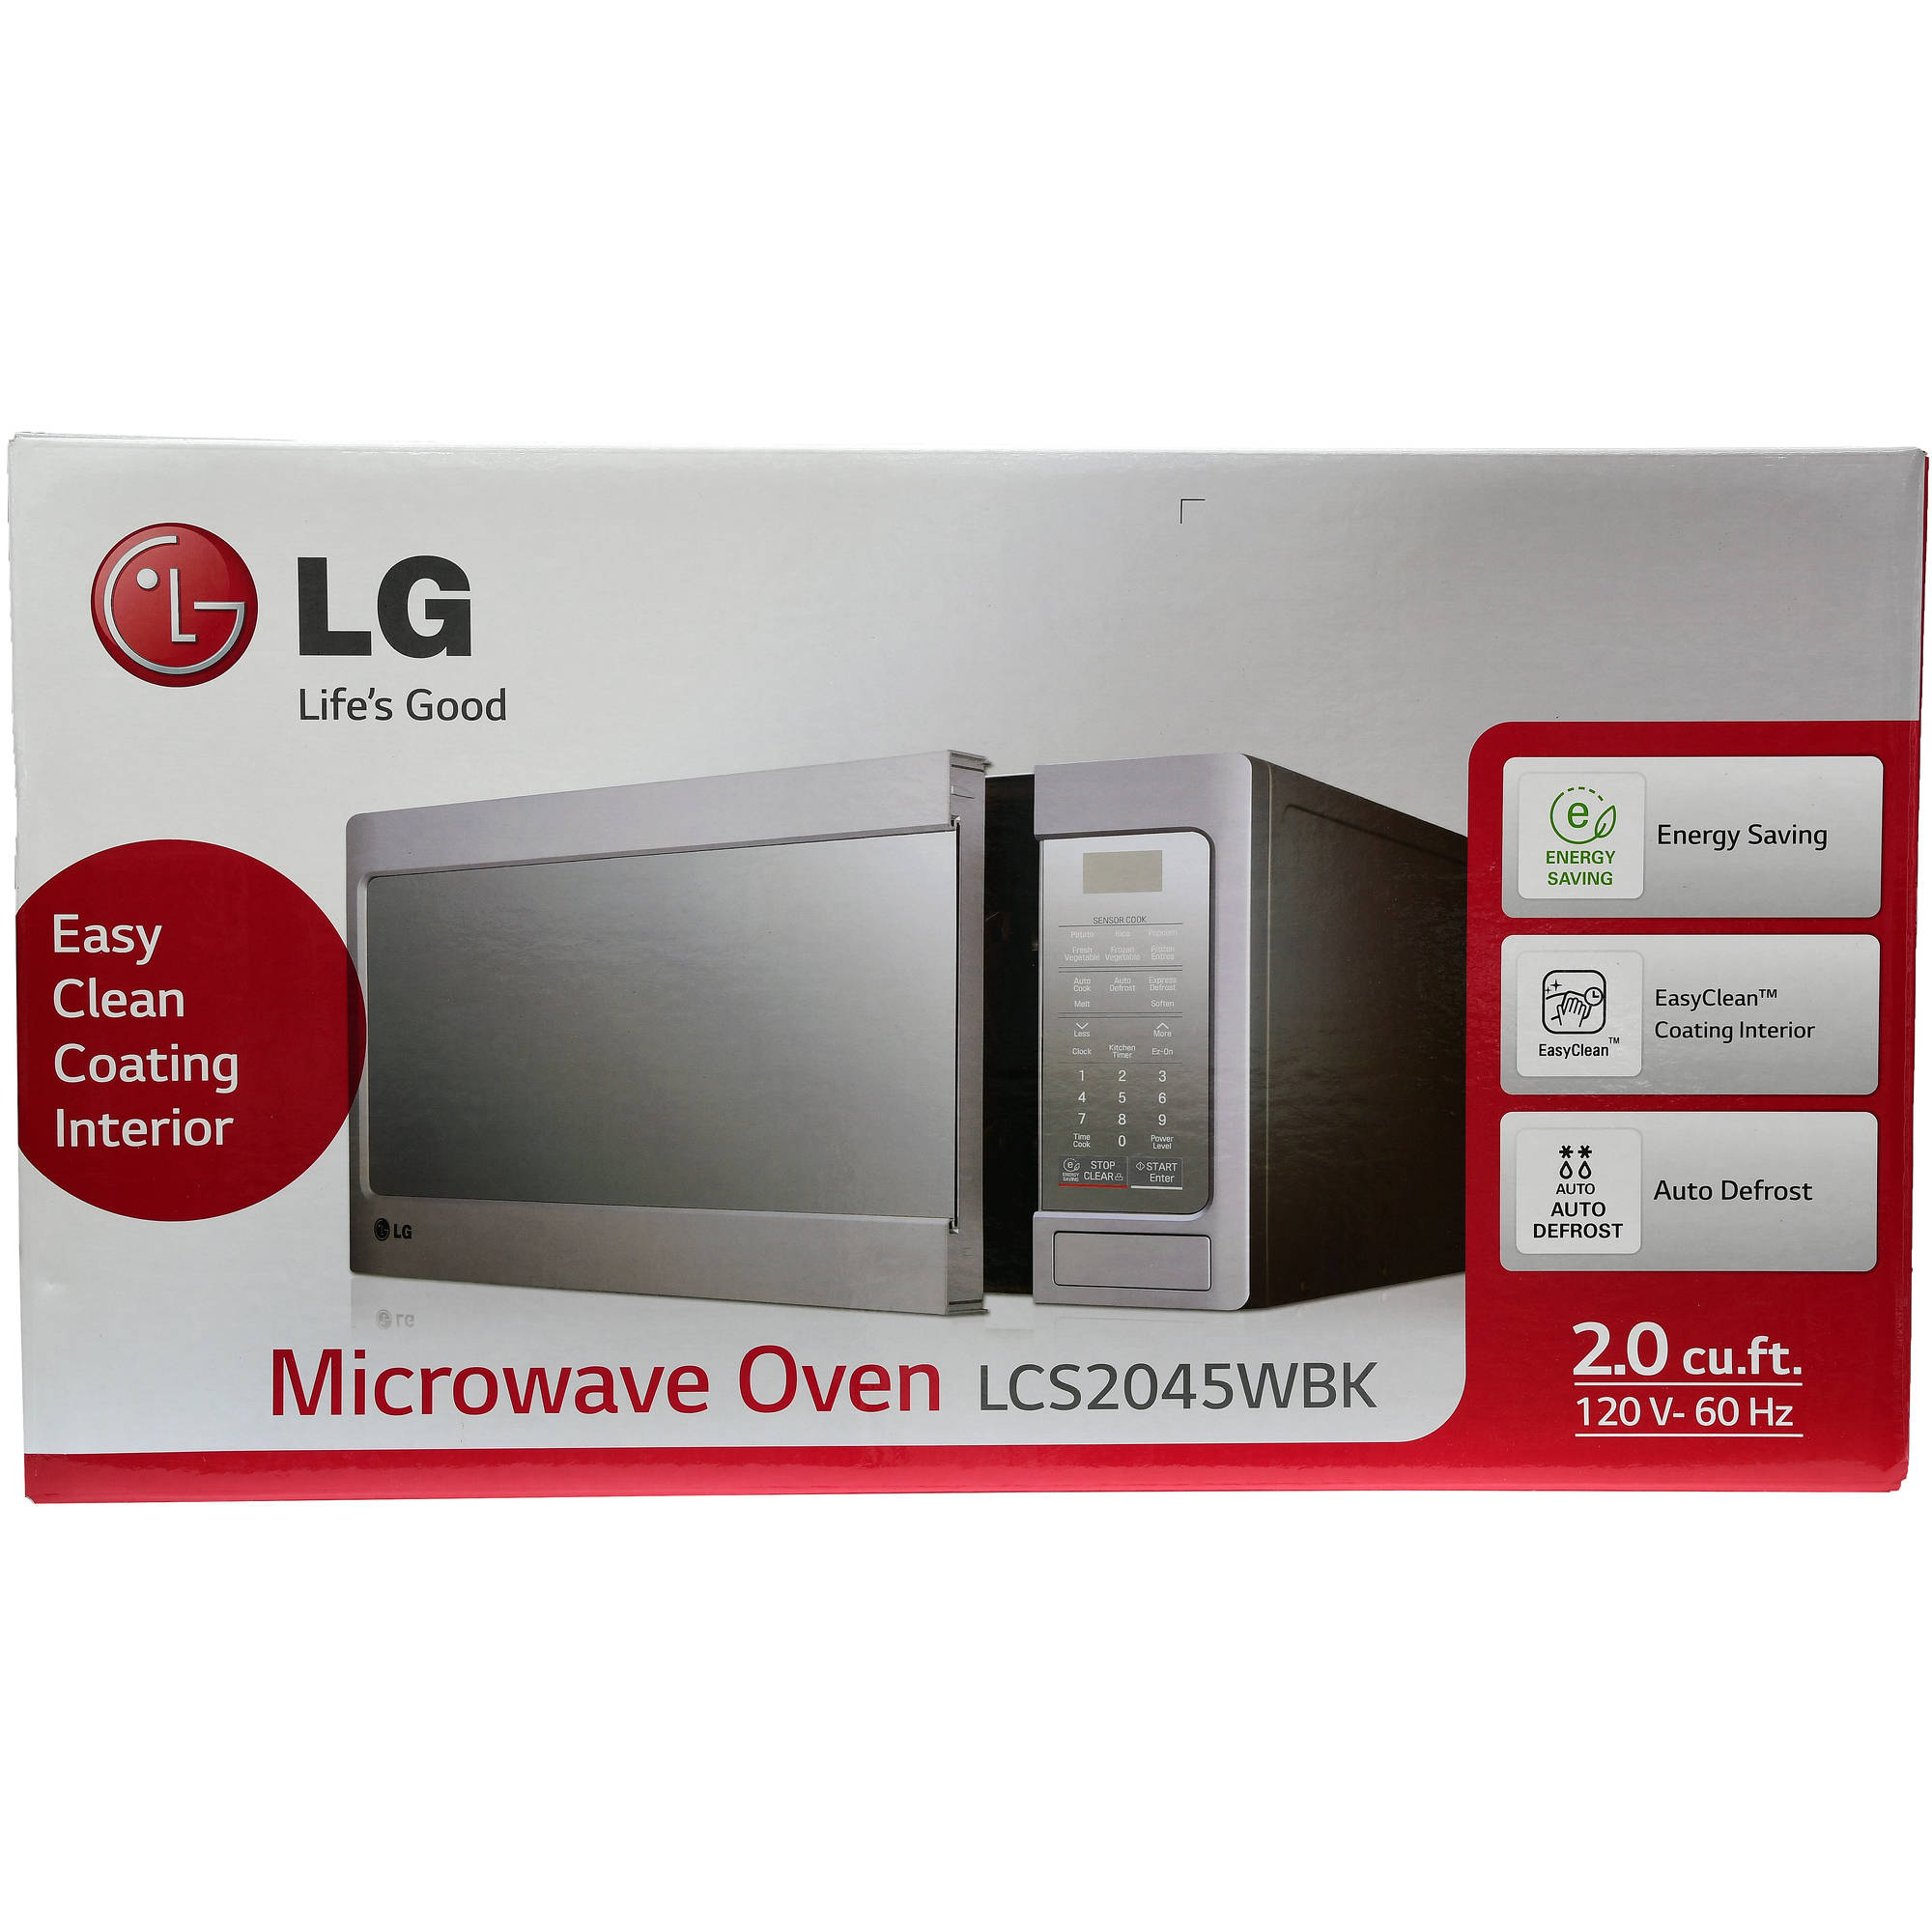 LG 2.0 cu ft Countertop Microwave Oven with EasyClean